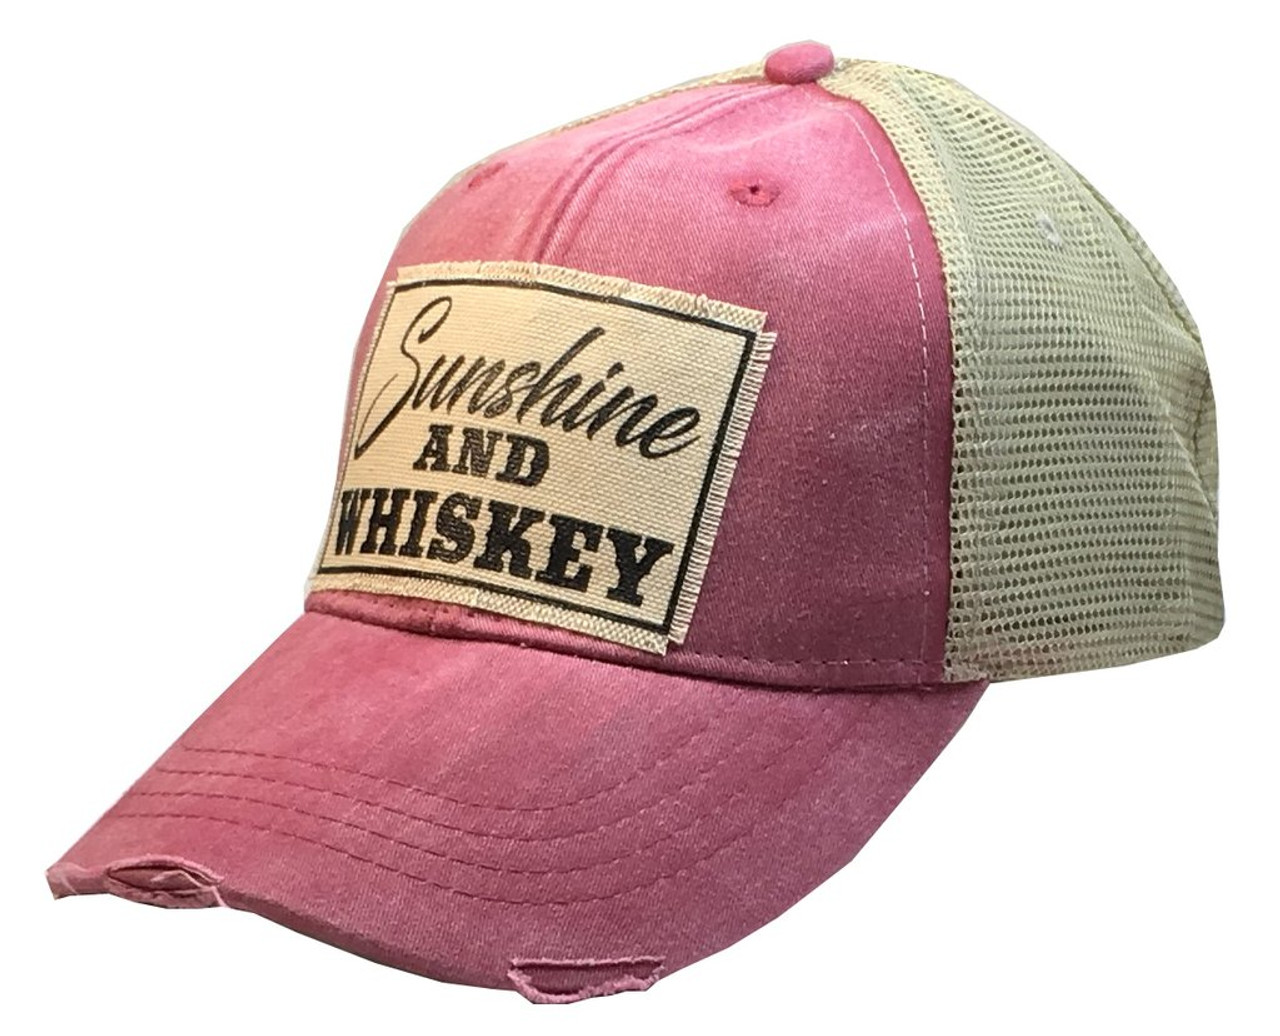 fa7608d2 Vintage Trucker Cap - Sunshine & Whiskey - Cordial Lee